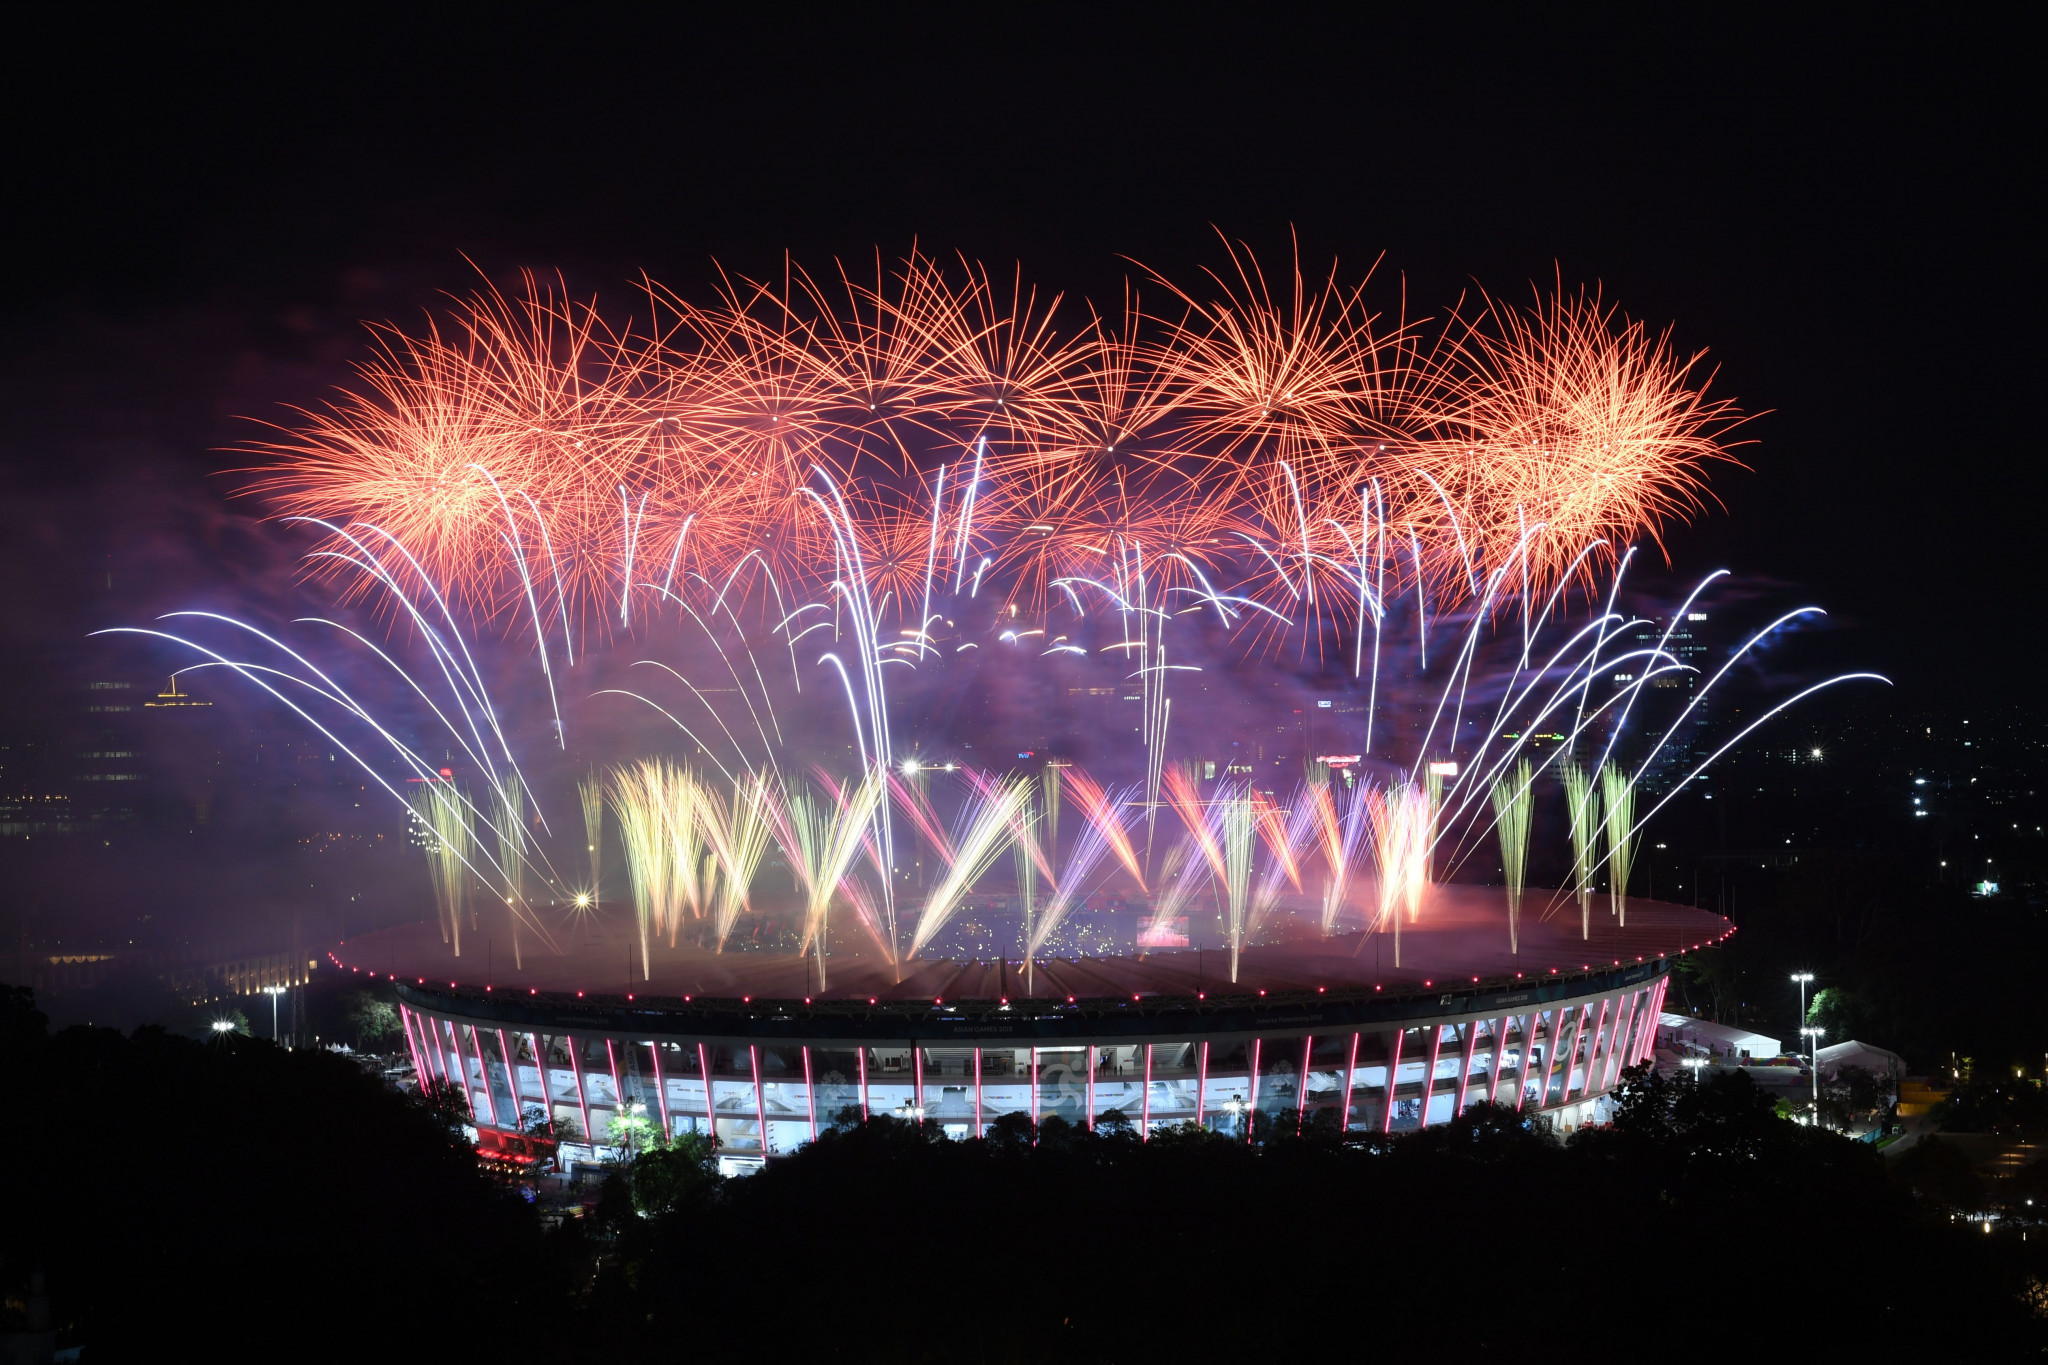 The Opening Ceremony will be held in Jakarta's Gelora Bung Karno Main Stadium, which also hosted the Ceremonies of the 2018 Asian Games ©Getty Images